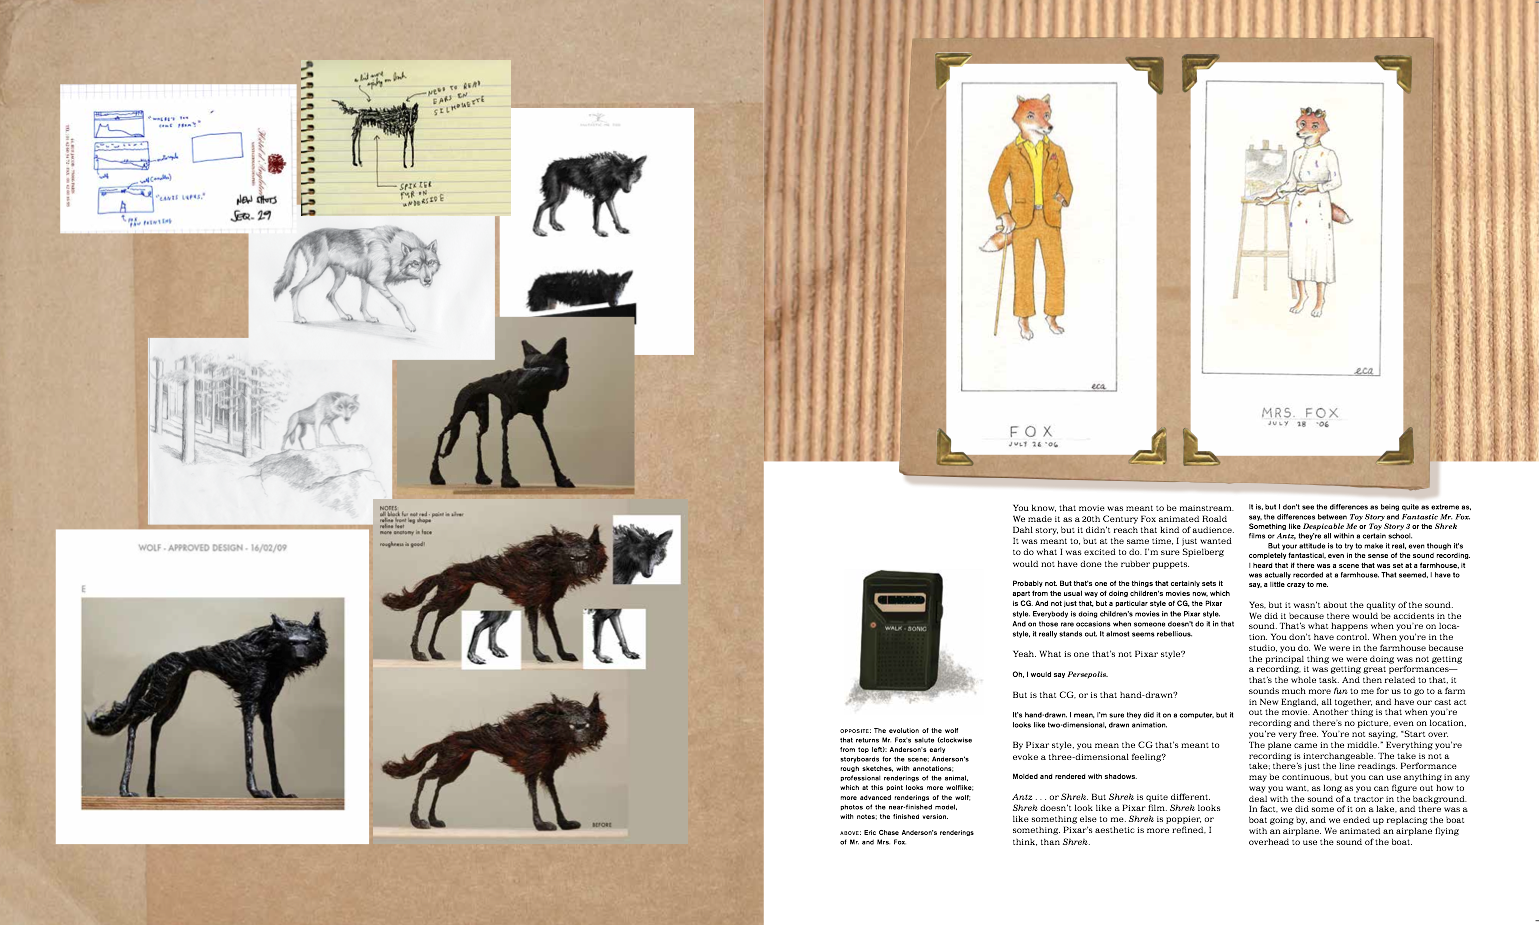 The Wes Anderson Collection Chapter 6 Fantastic Mr Fox Mzs Roger Ebert